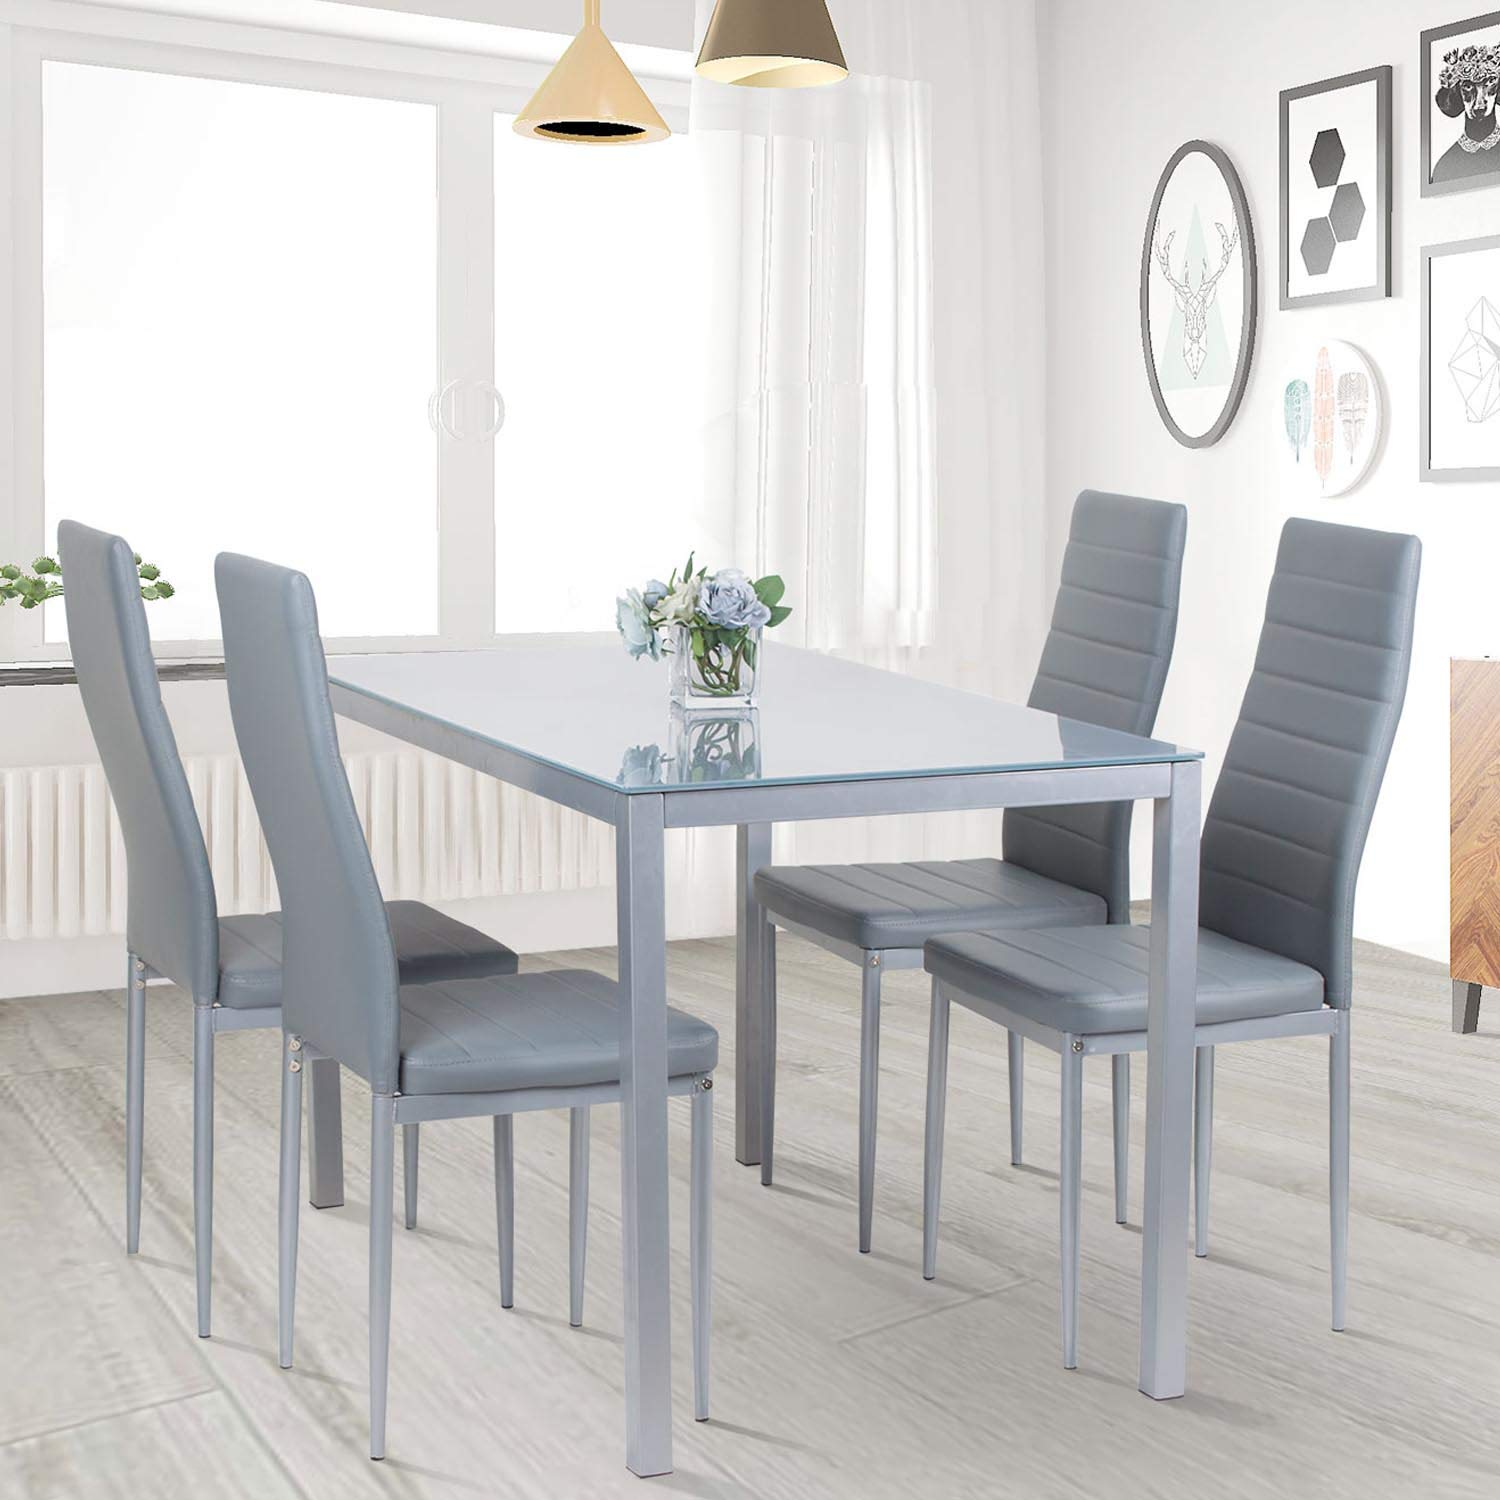 Jeffordoutlet Dining Table And Chairs Set Of 4 Chairs Modern Home Kitchen Living Room Furniture Buy Online In Mongolia At Mongolia Desertcart Com Productid 155230839